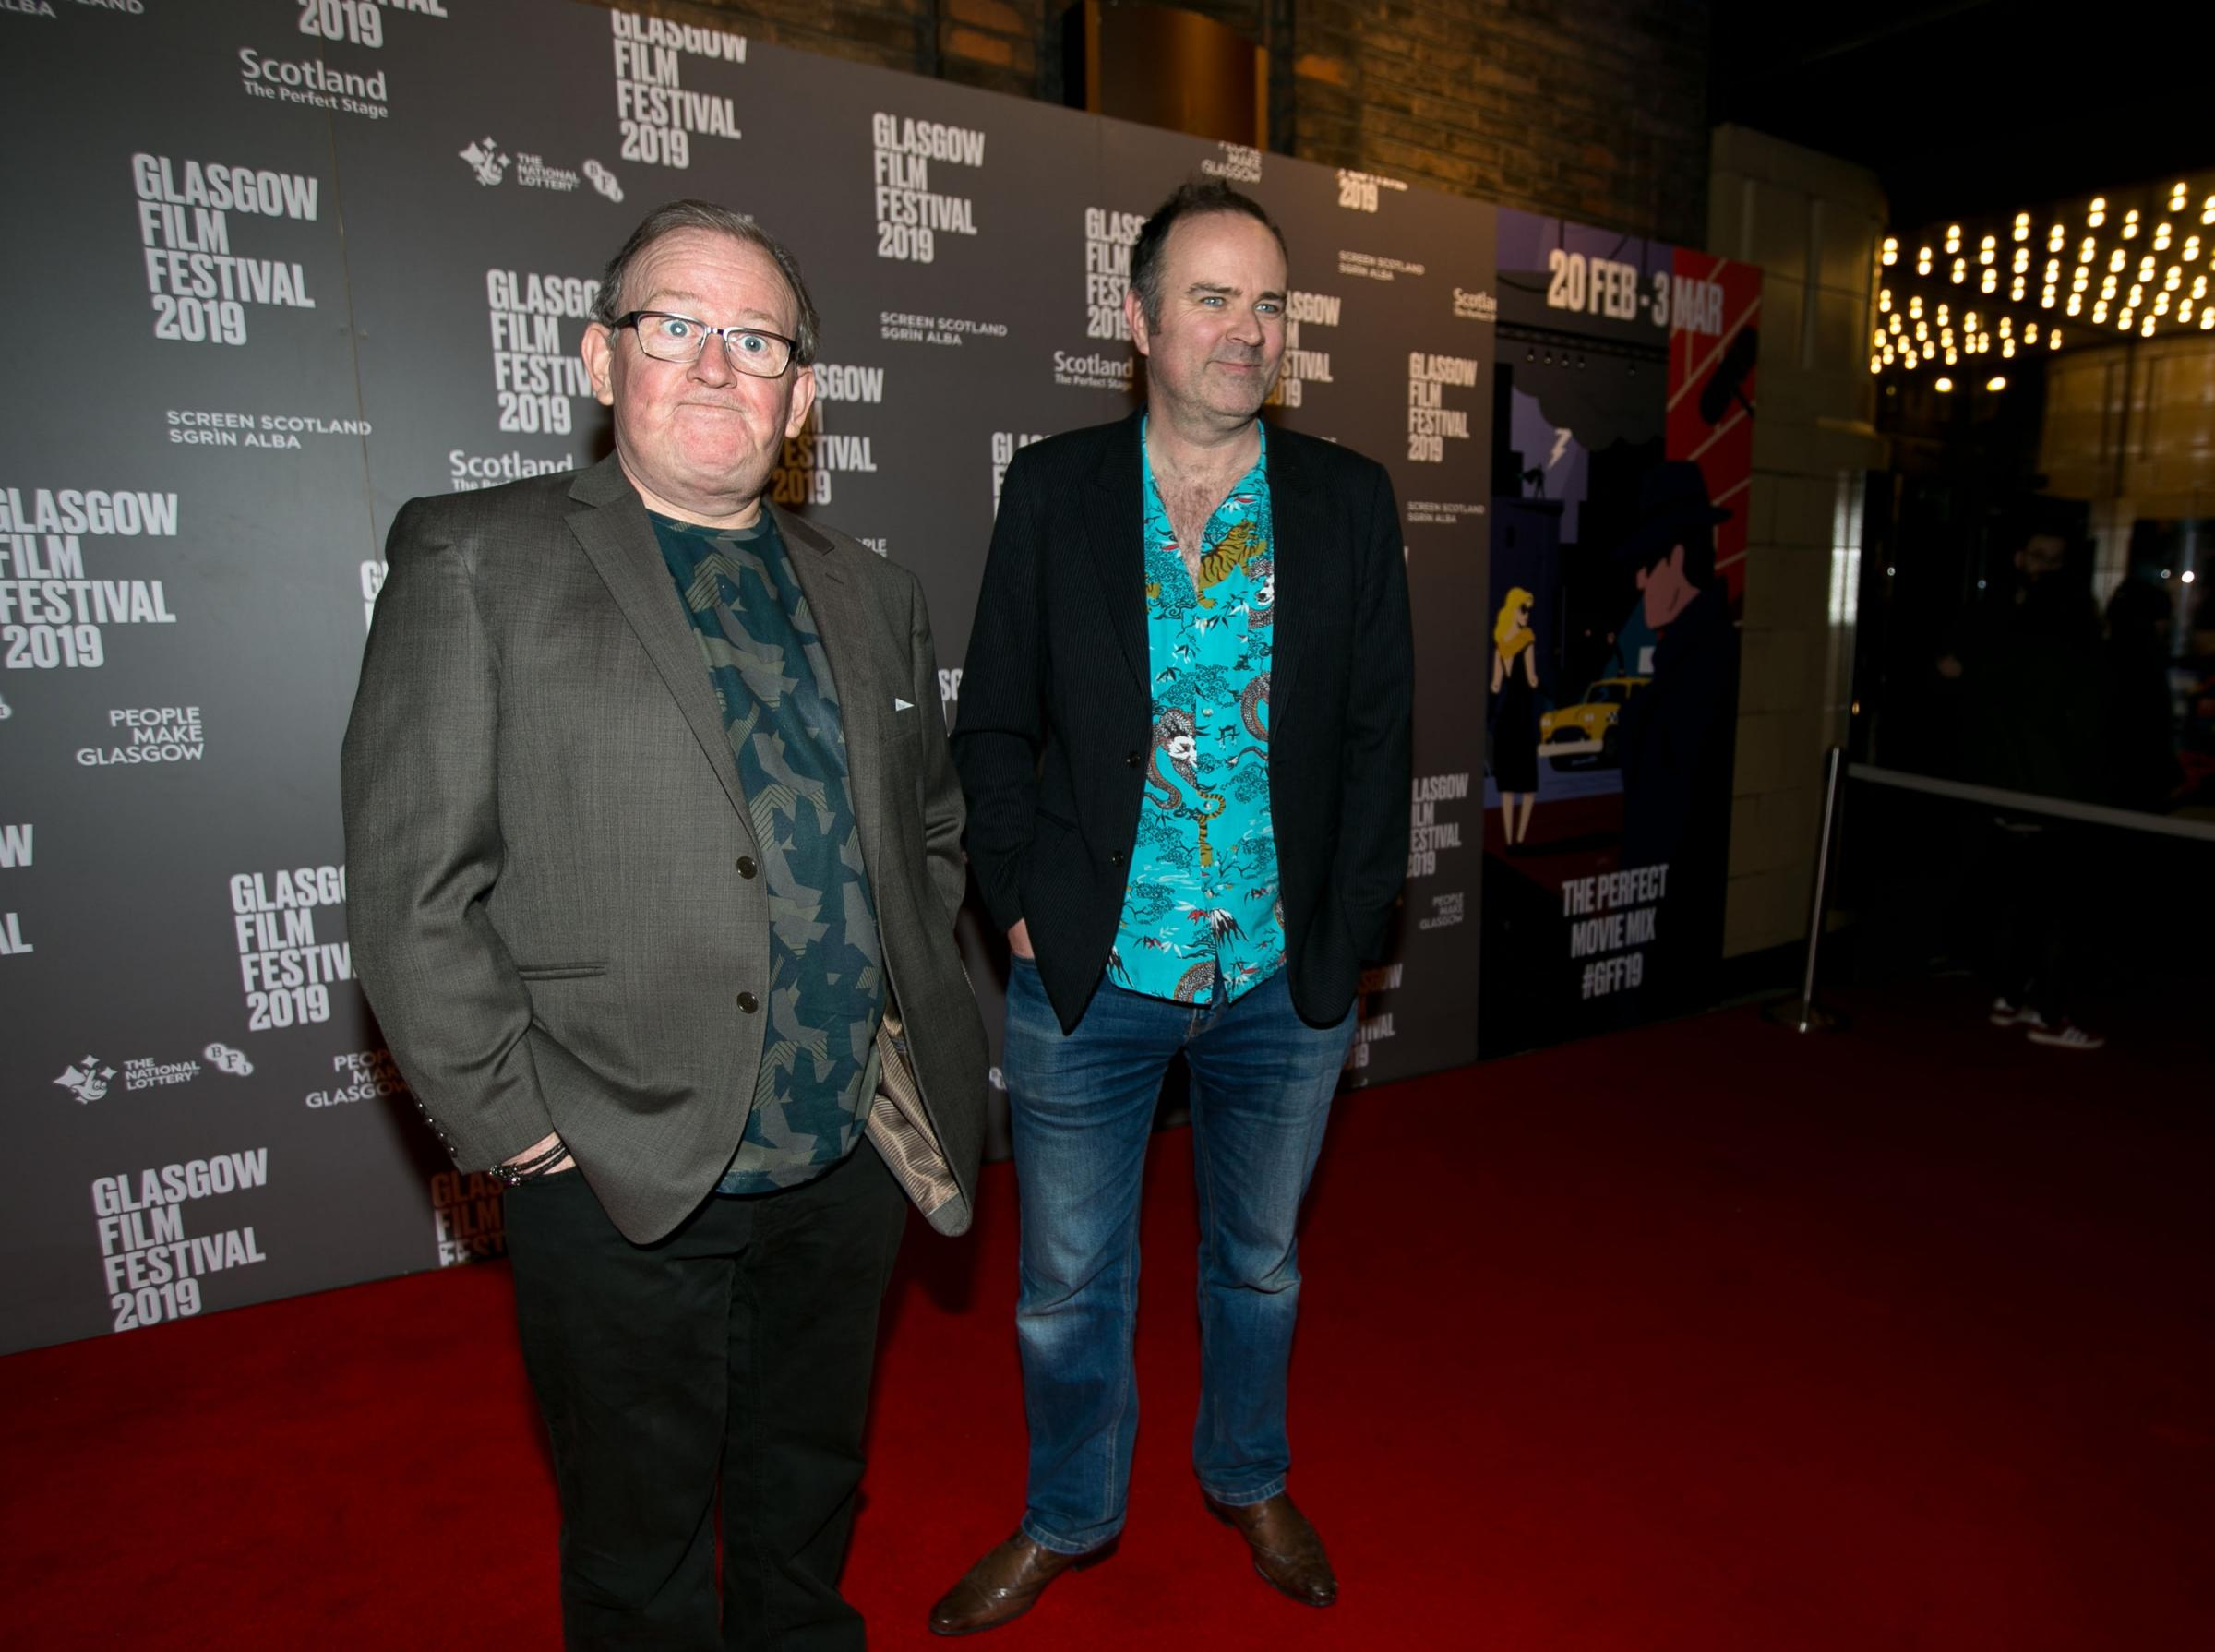 Special Glasgow Film Festival event attended by Still Game Stars